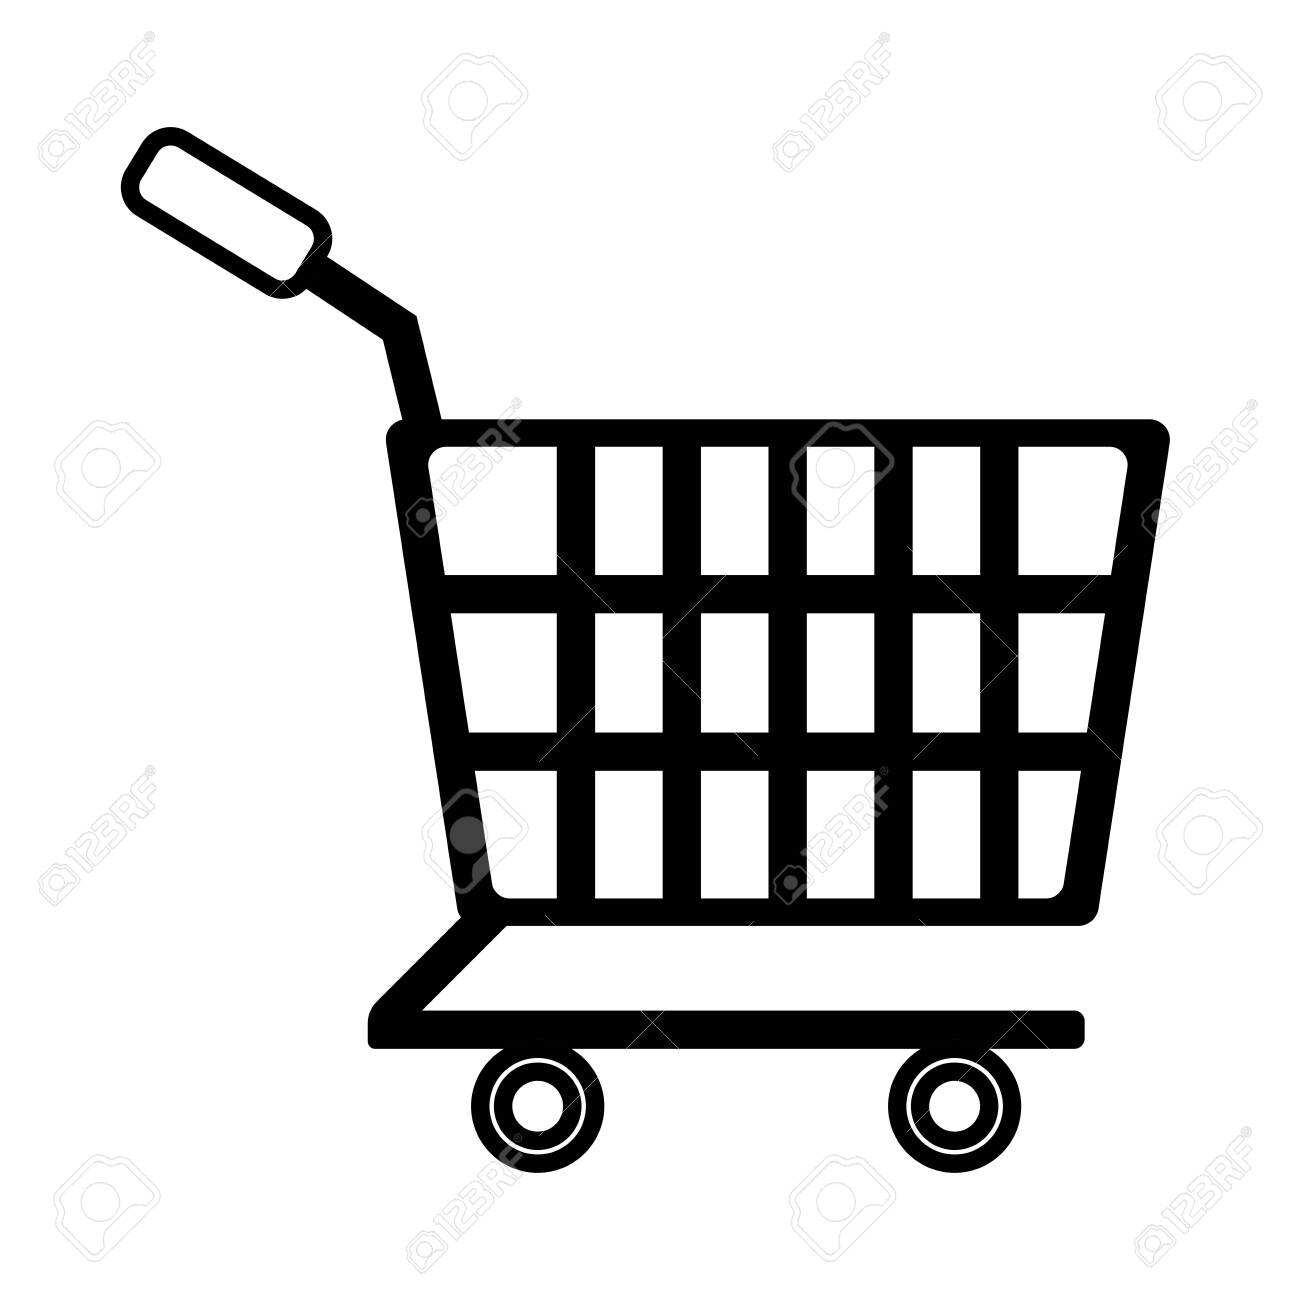 shopping cart line style icon vector illustration design - 153247888